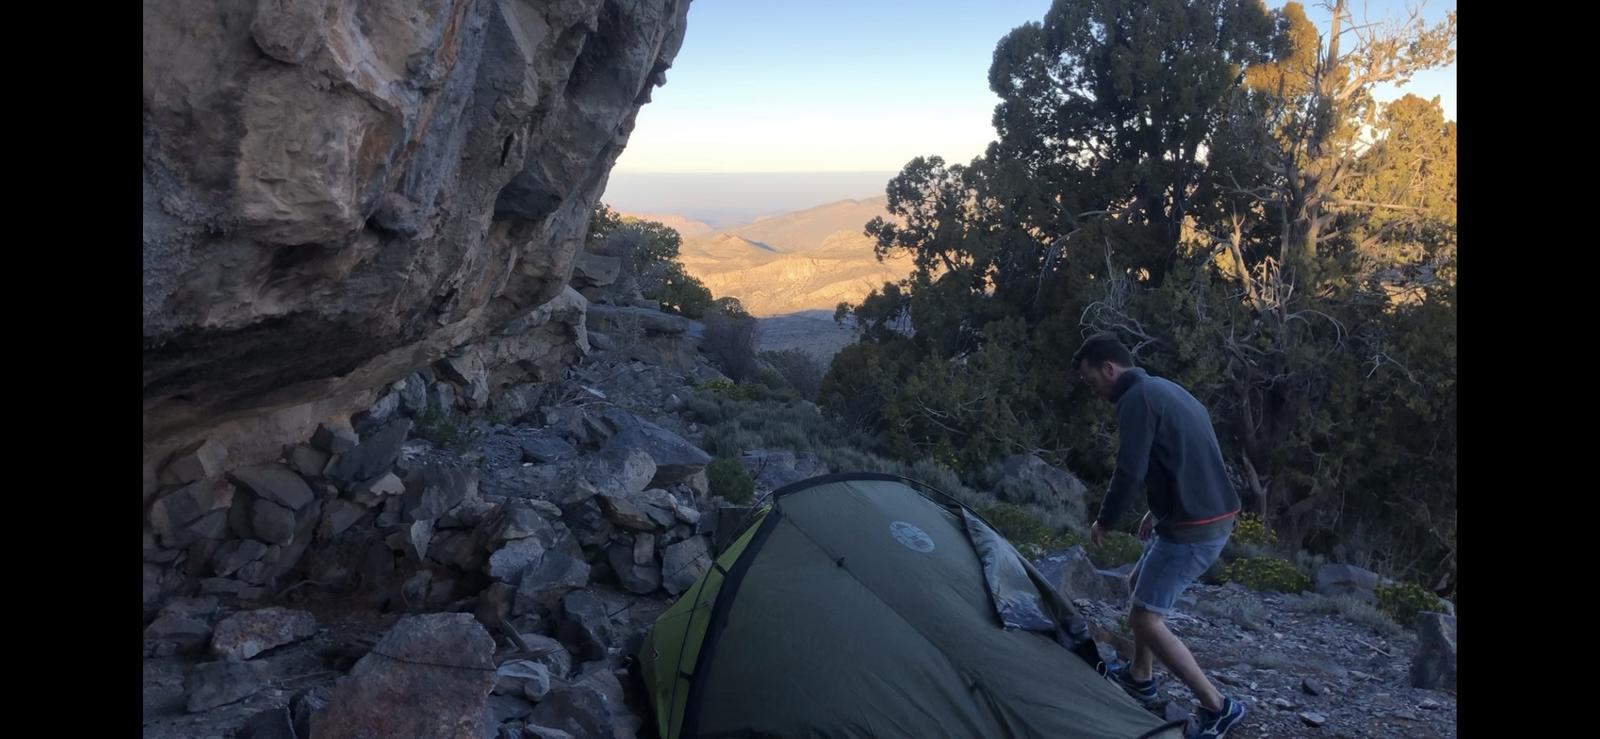 Foto de Camping at Djebel Shams (W6)